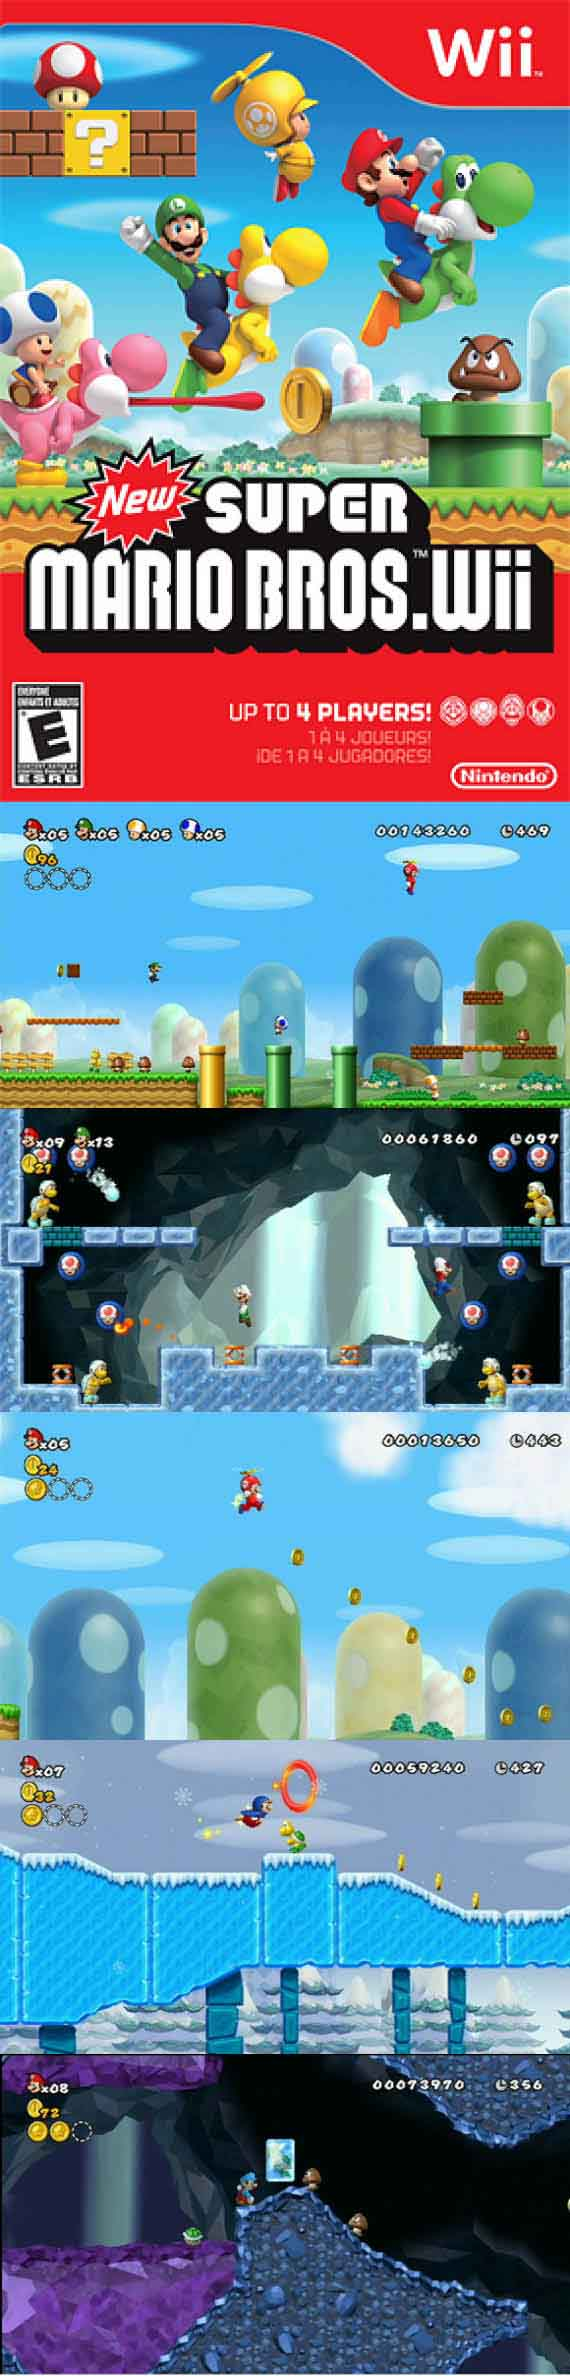 New #SuperMario Bros Wii gives #gamers more #2Dplatforming #Mario!  http://www.levelgamingground.com/new-super-mario-bros-wii-review.html